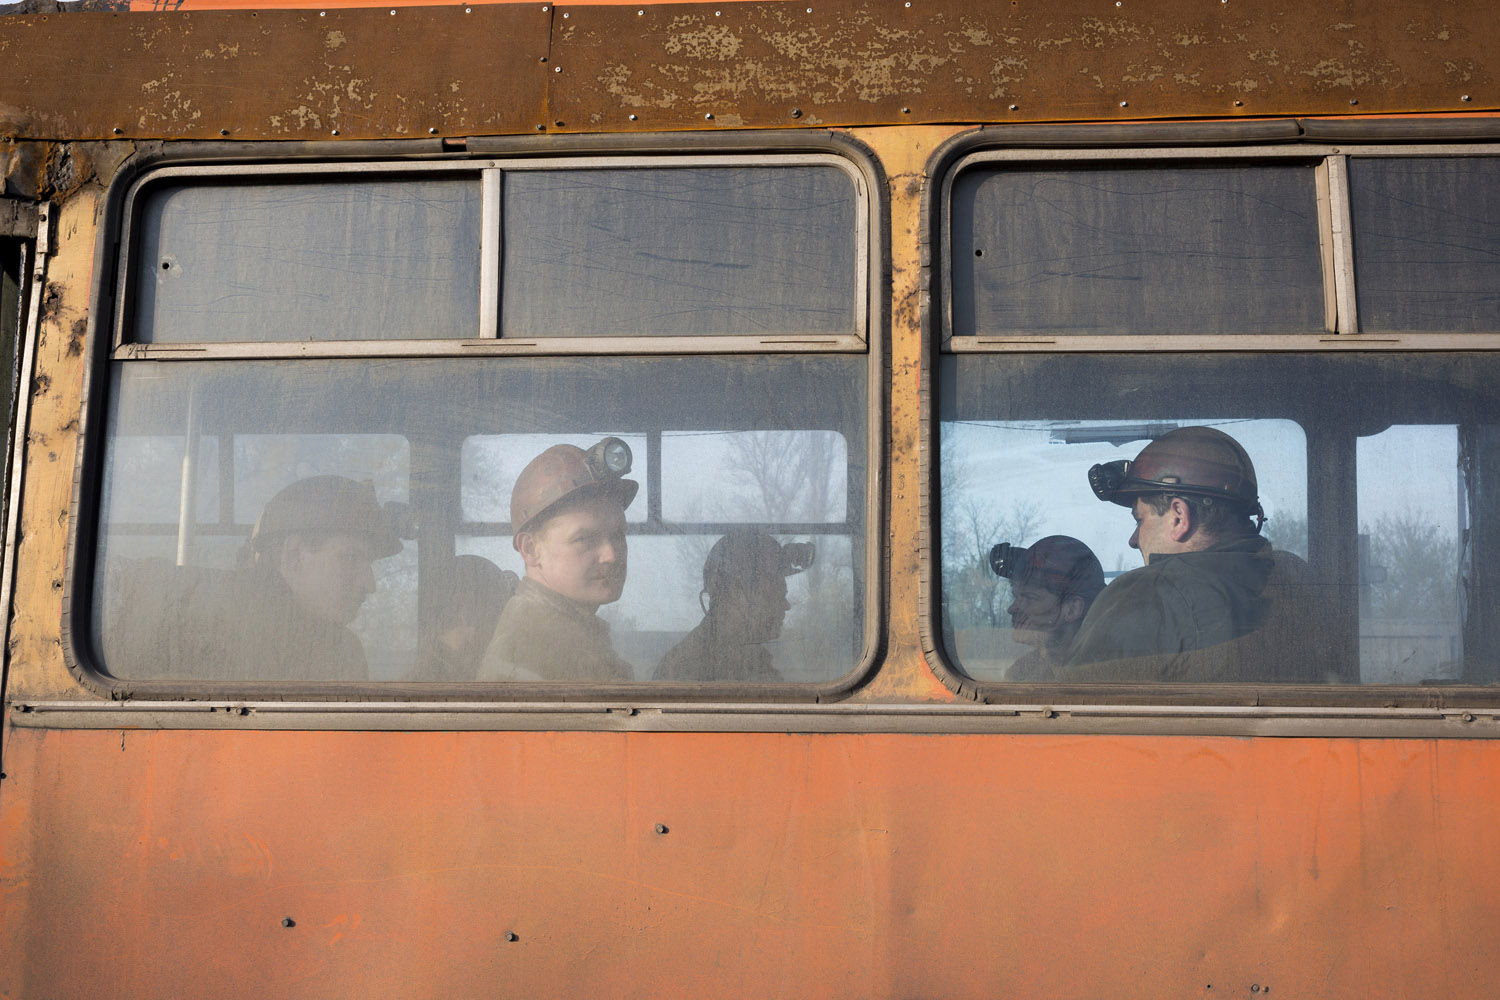 Miners on the bus to work in the early hours of the morning in Makeevka, a mining town on the outskirts of Donetsk.